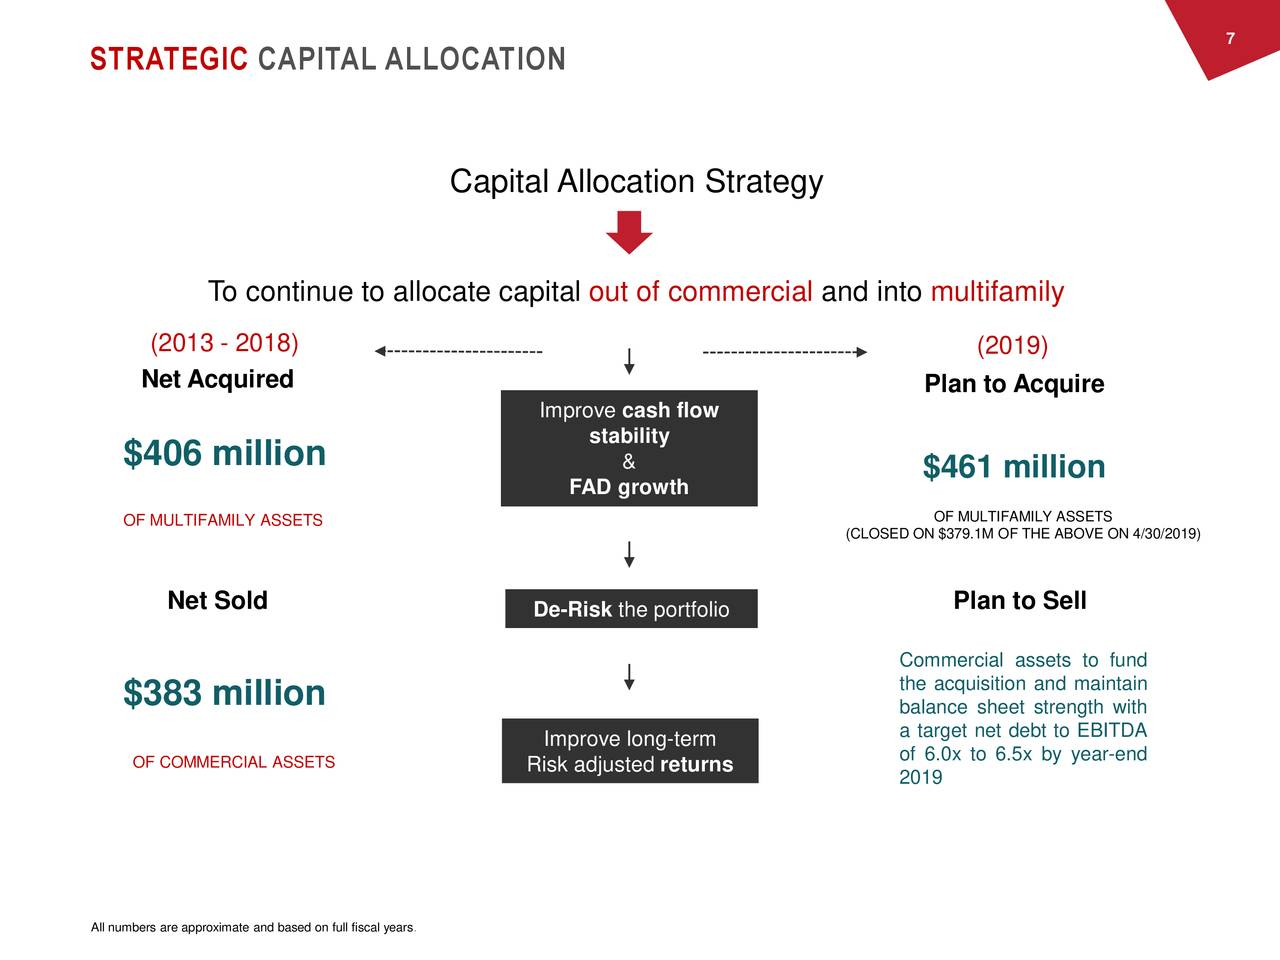 STRATEGIC CAPITAL ALLOCATION Capital Allocation Strategy To continue to allocate capital out of commercial and into multifamily (2013 - 2018) (2019) Net Acquired Plan to Acquire Improve cash flow stability $406 million & $461 million FAD growth OF MULTIFAMILY ASSETS OF MULTIFAMILY ASSETS (CLOSED ON $379.1M OF THE ABOVE ON 4/30/2019) Net Sold De-Risk the portfolio Plan to Sell Commercial assets to fund the acquisition and maintain $383 million balance sheet strength with a target net debt to EBITDA Improve long-term of 6.0x to 6.5x by year-end OF COMMERCIAL ASSETS Risk adjusted returns 2019 All numbers are approximate and based on full fiscal years.